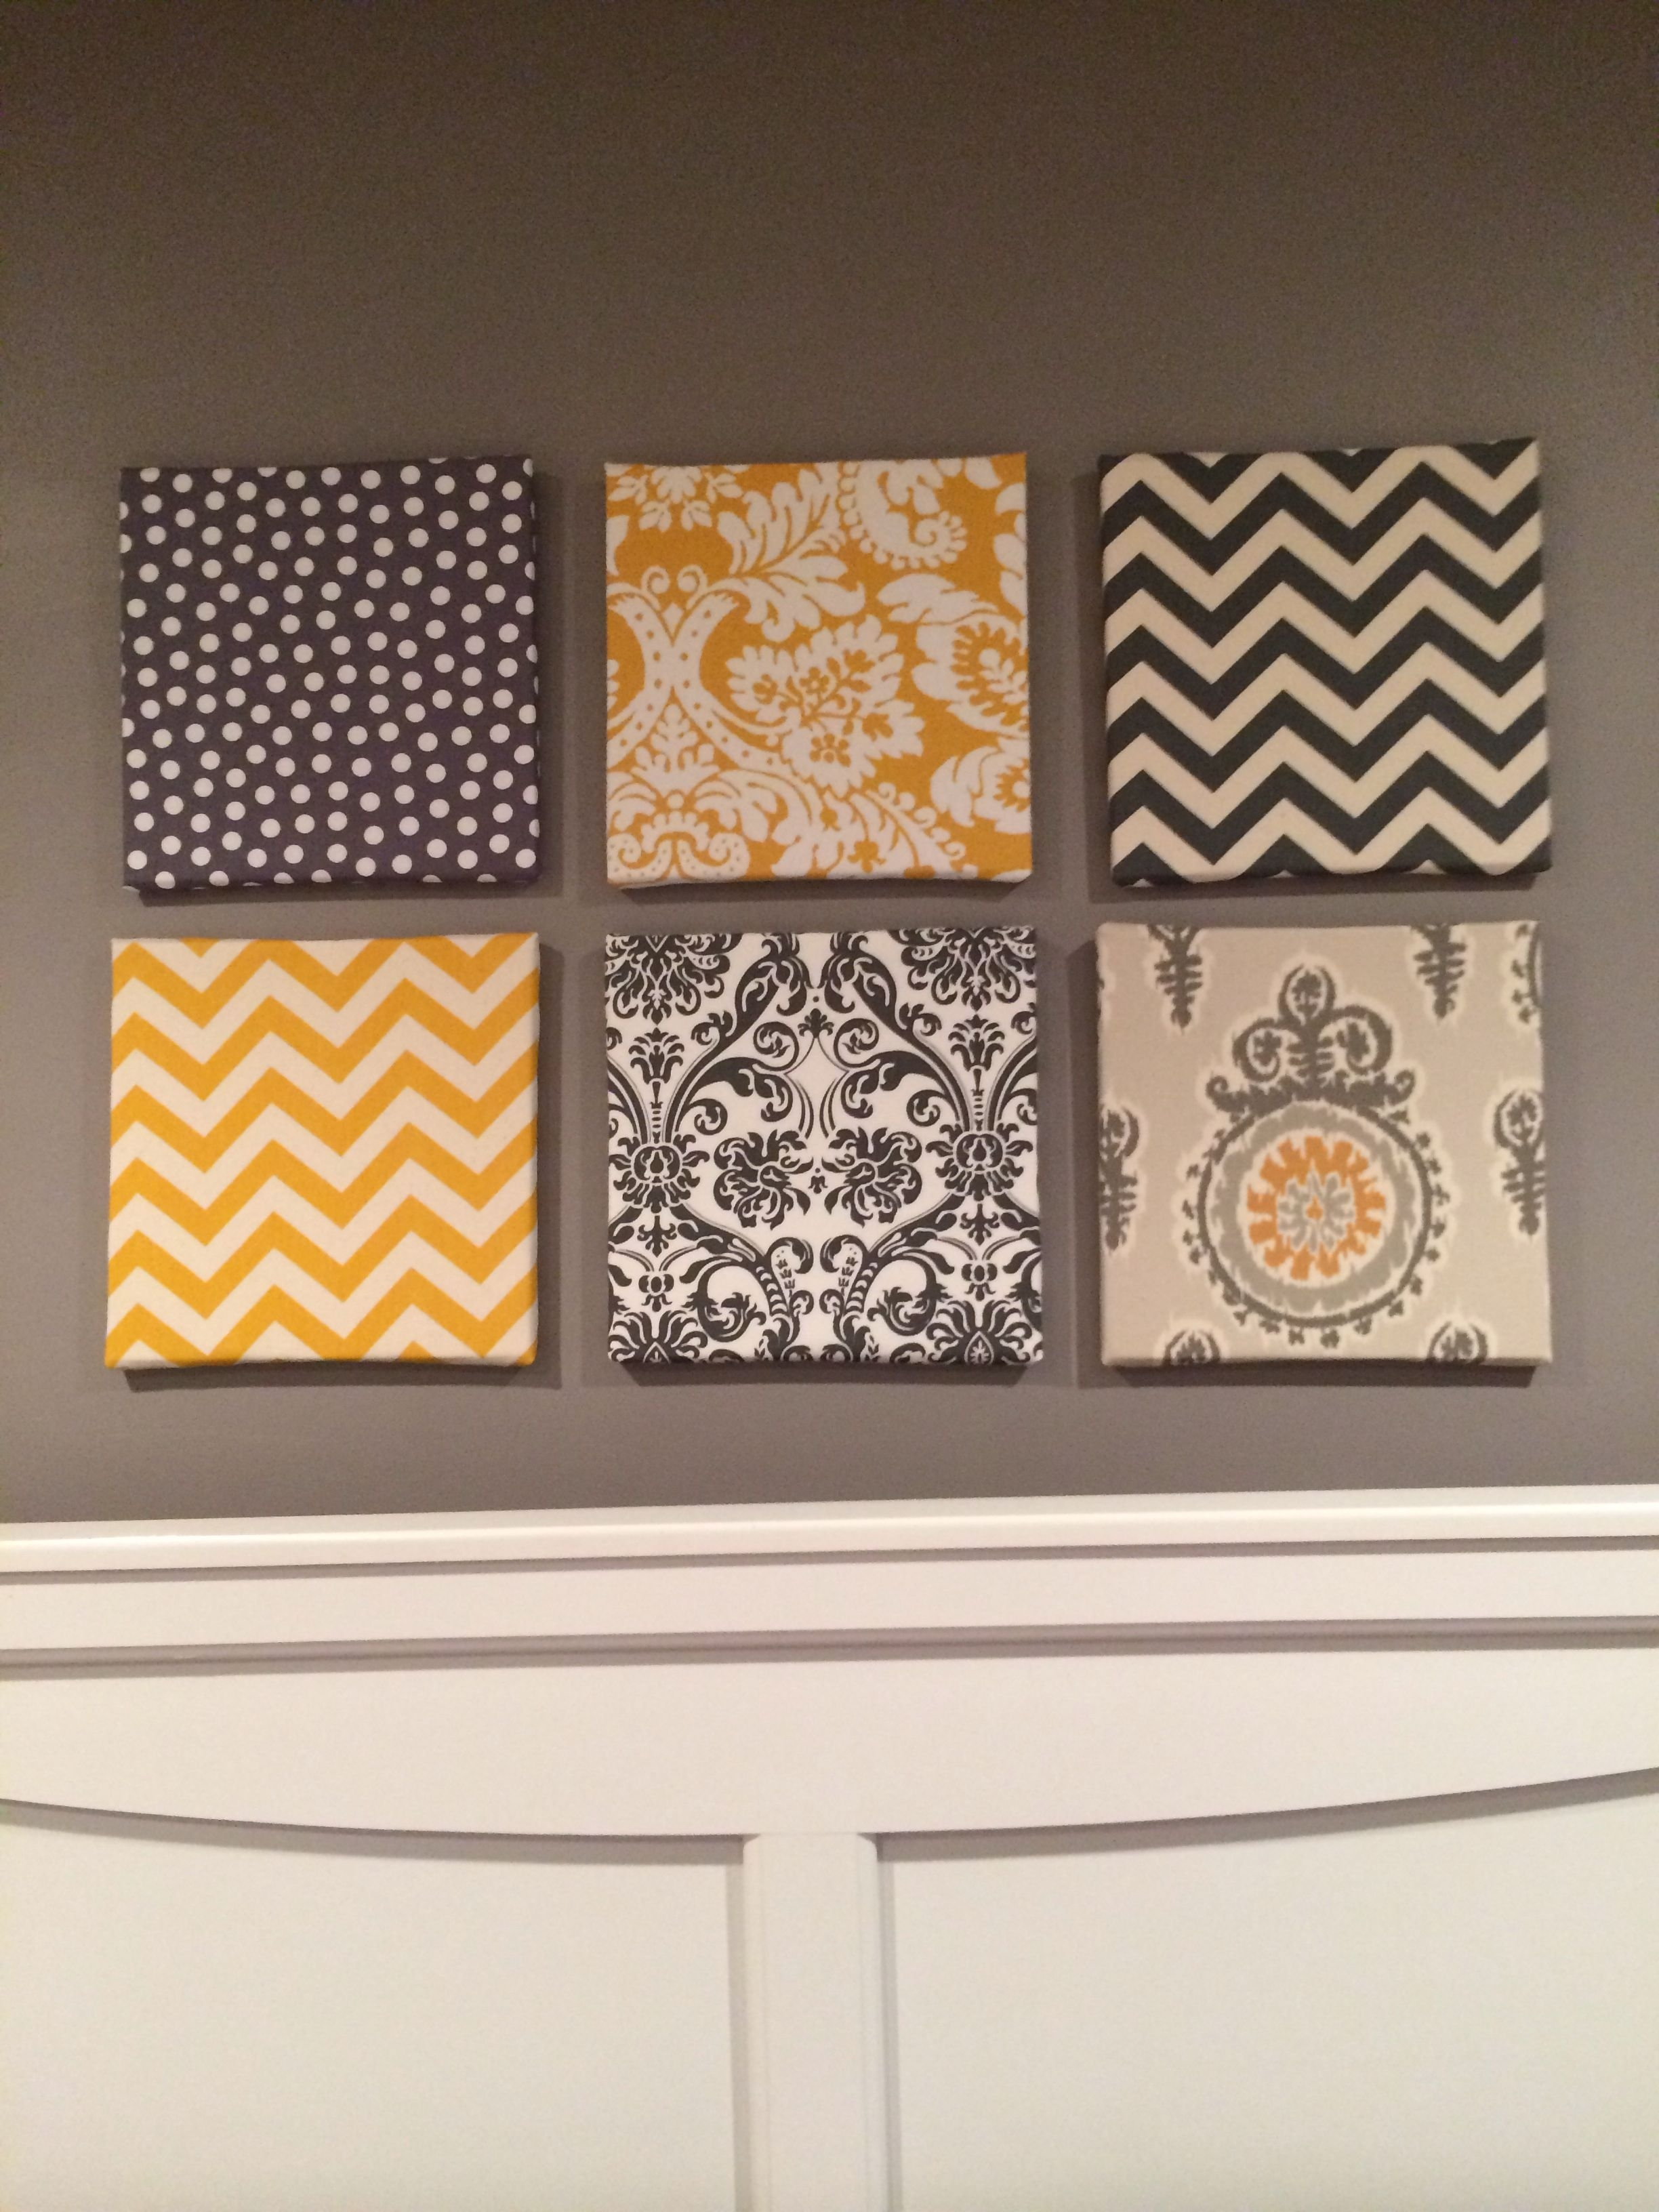 My Fabric Over Canvas Wall Art For My Gray And Yellow Themed Room With Most Recent Fabric Panel Wall Art With Embellishments (View 3 of 15)